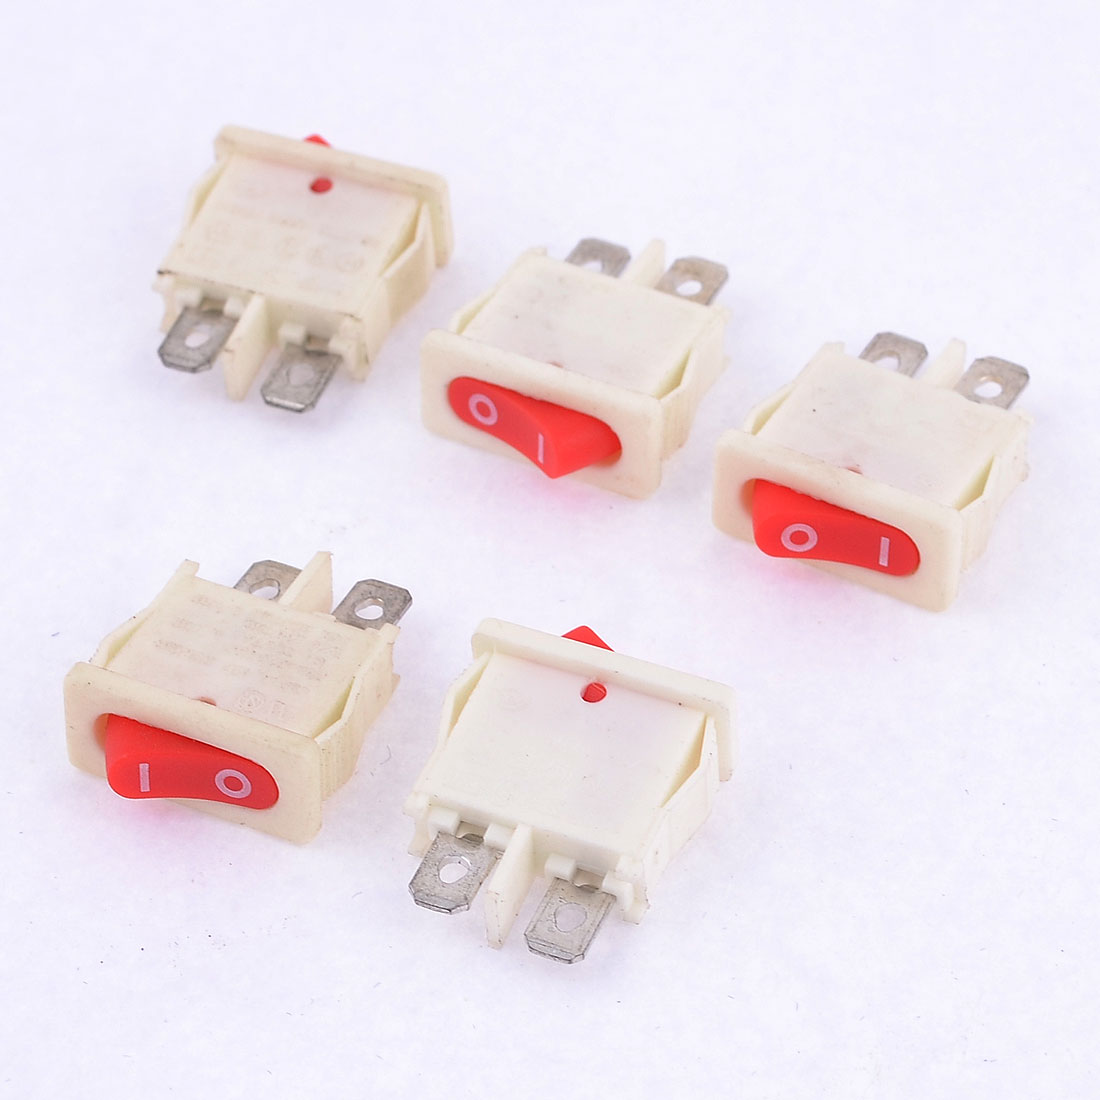 5 Pcs 2 Pin 2 Position SPST Rocker Switch AC 15A/250V 20A/125V for Vehicle Car